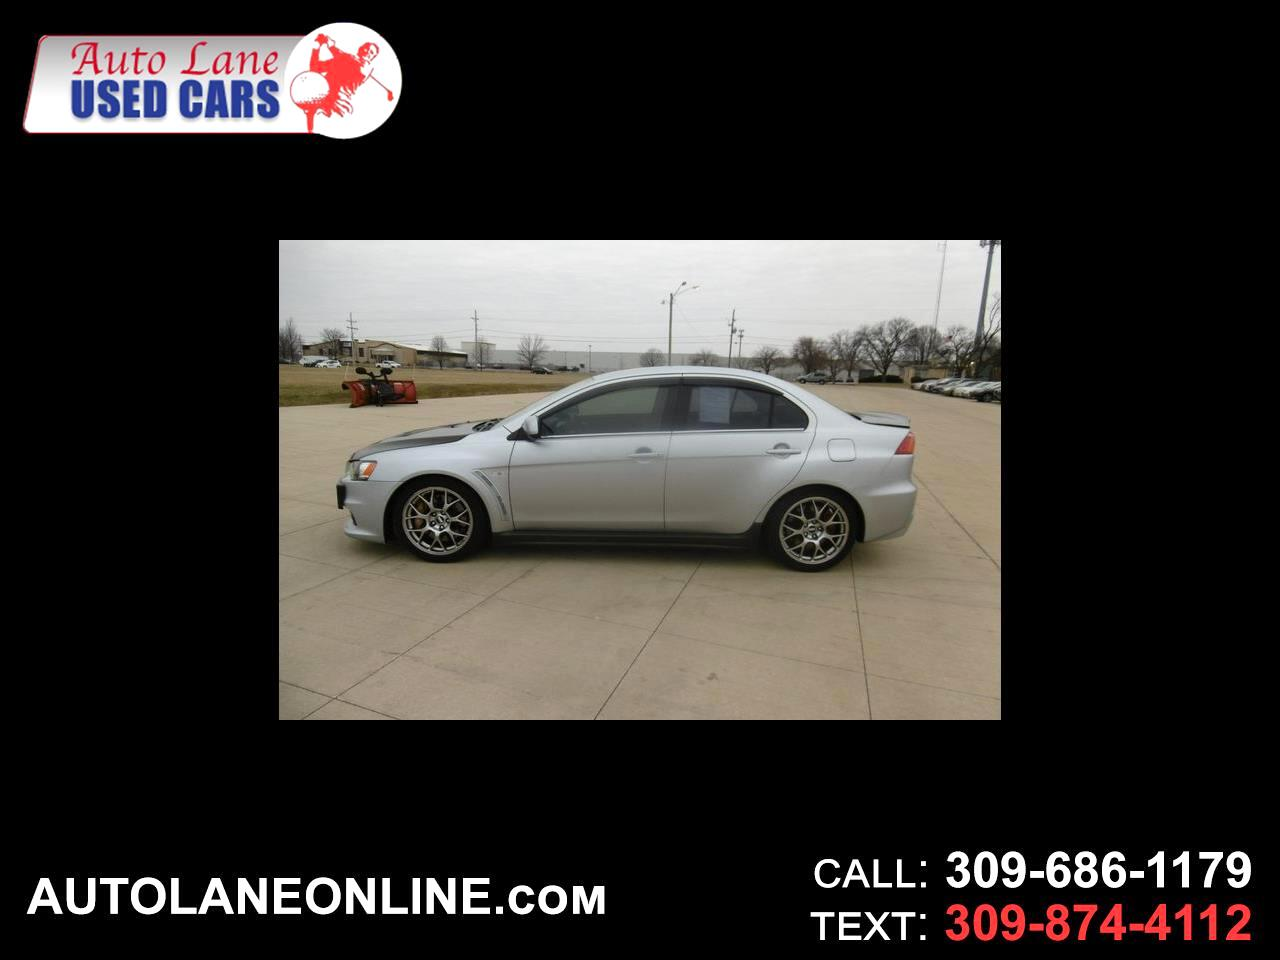 2008 Mitsubishi Lancer 4dr Sdn Man Evolution MR